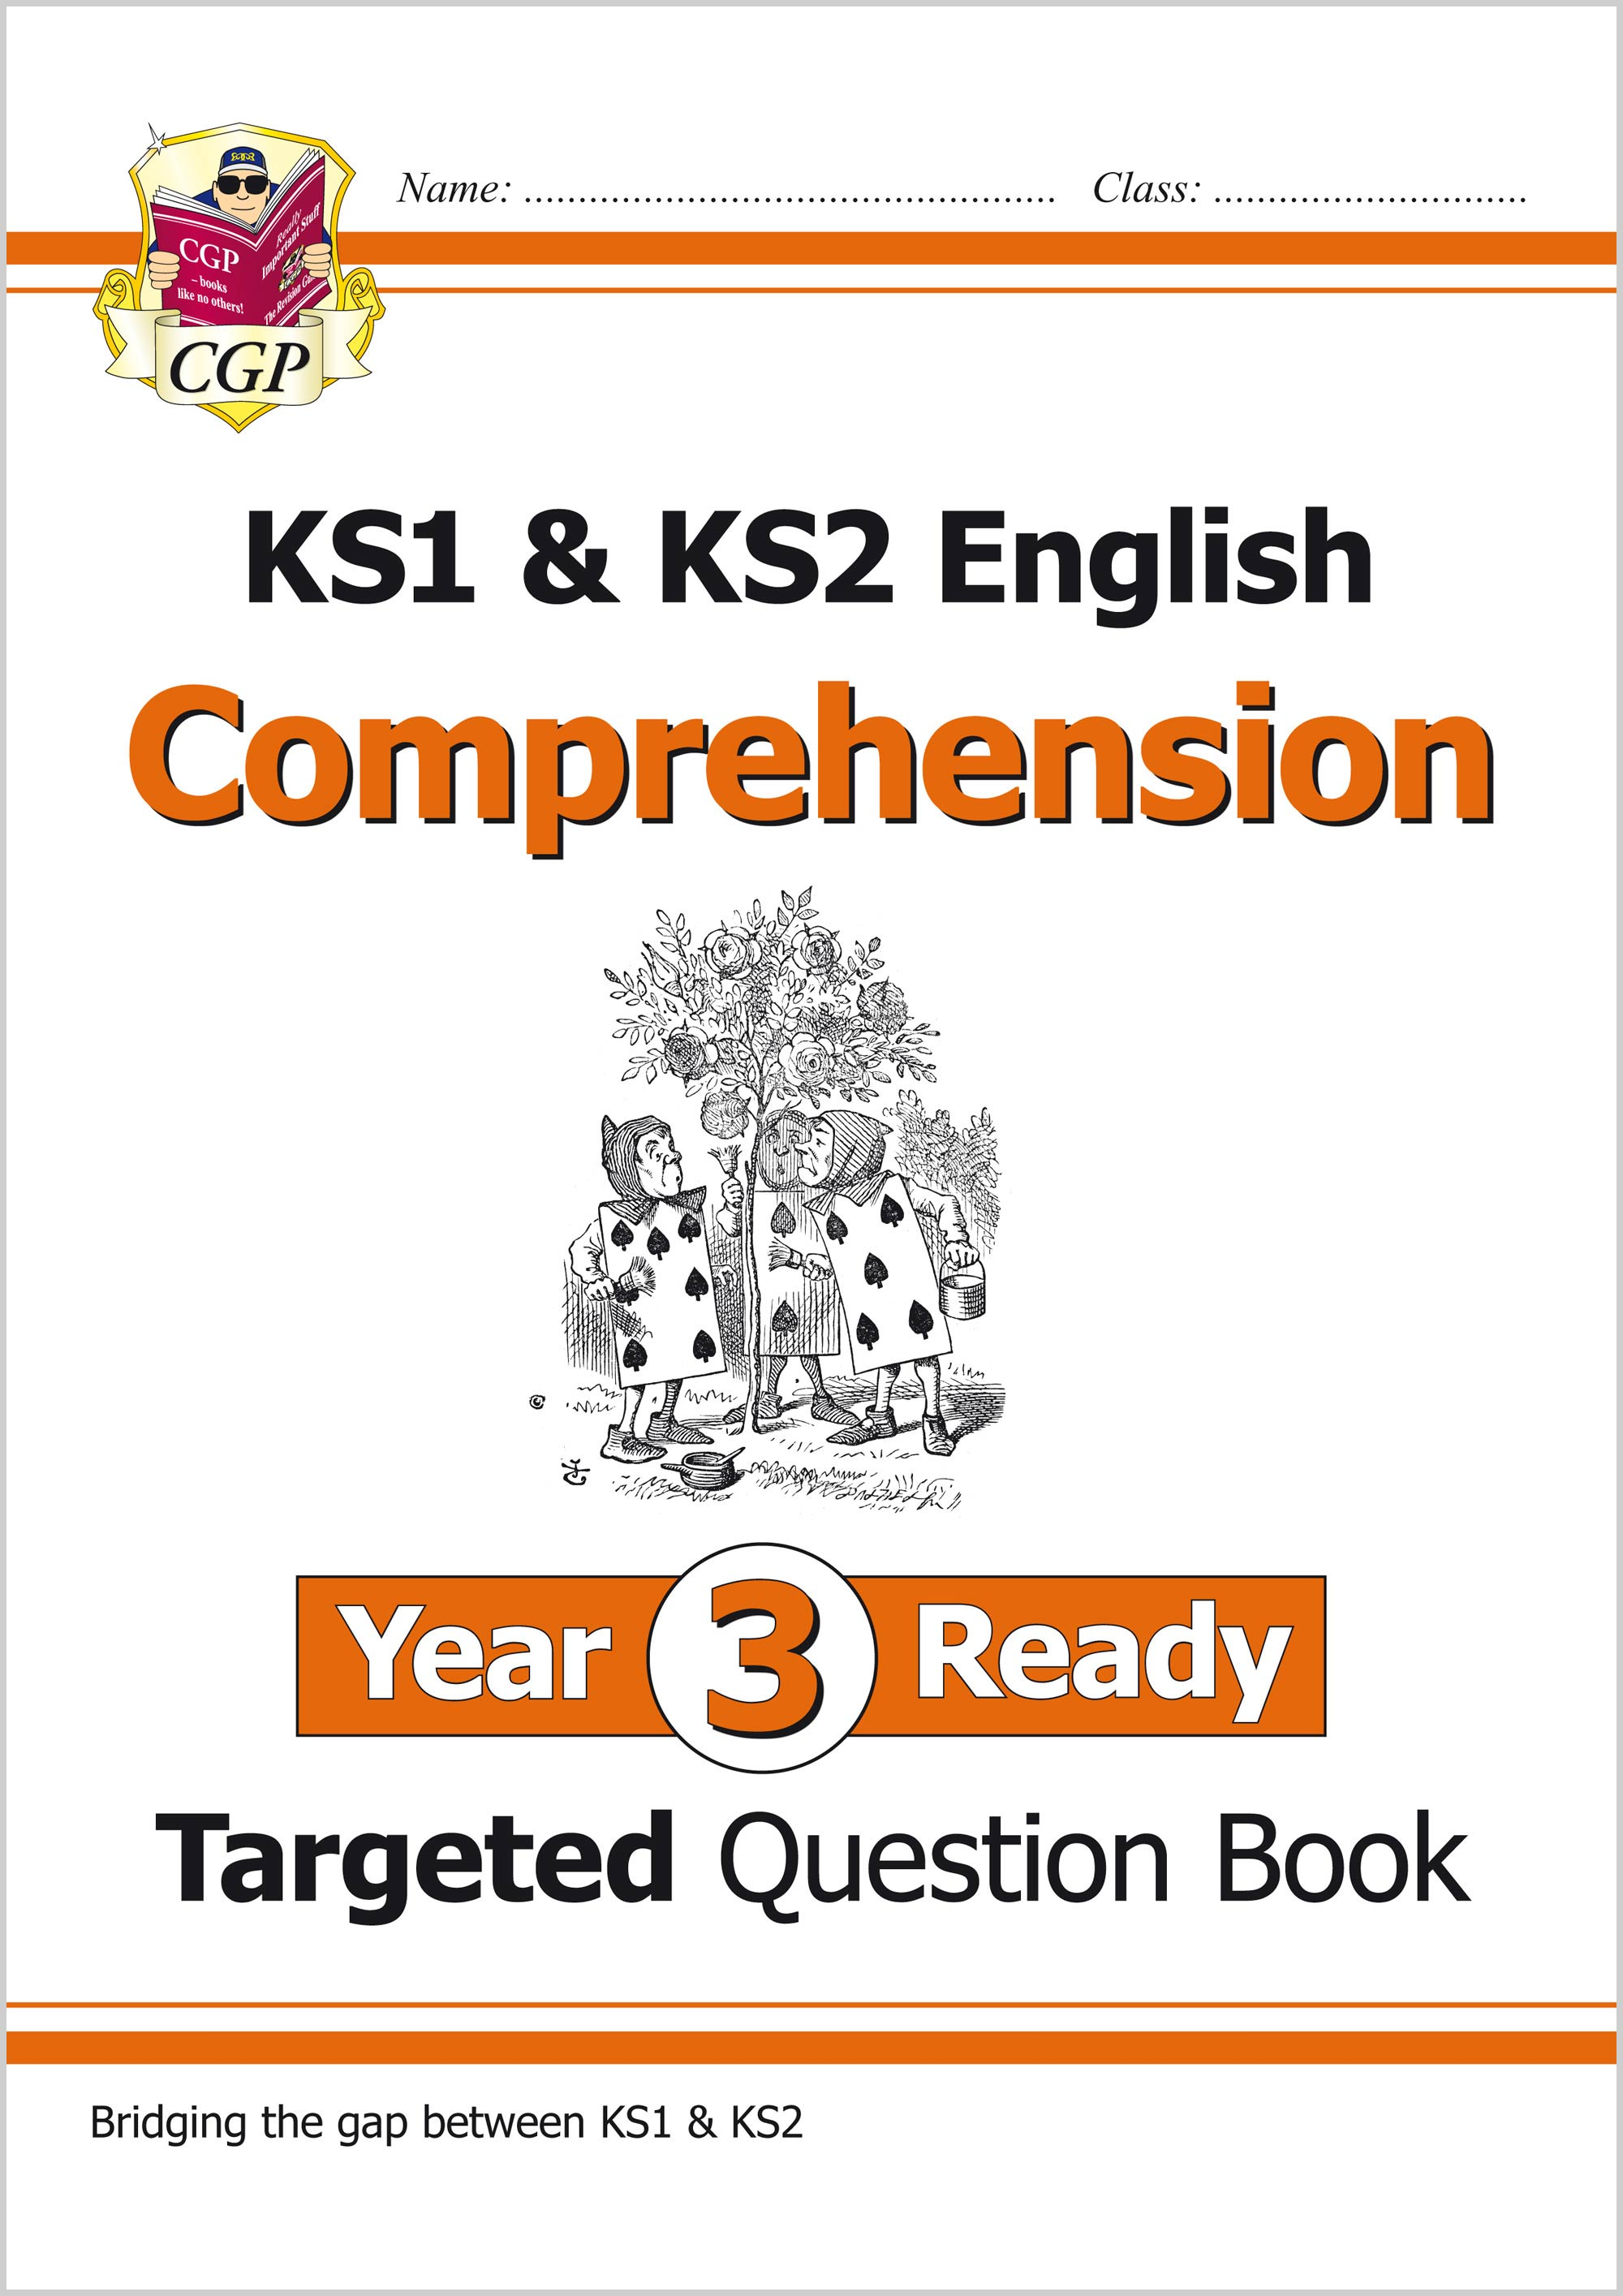 EH2CW11 - New KS1 & KS2 English Targeted Question Book: Comprehension - Year 3 Ready